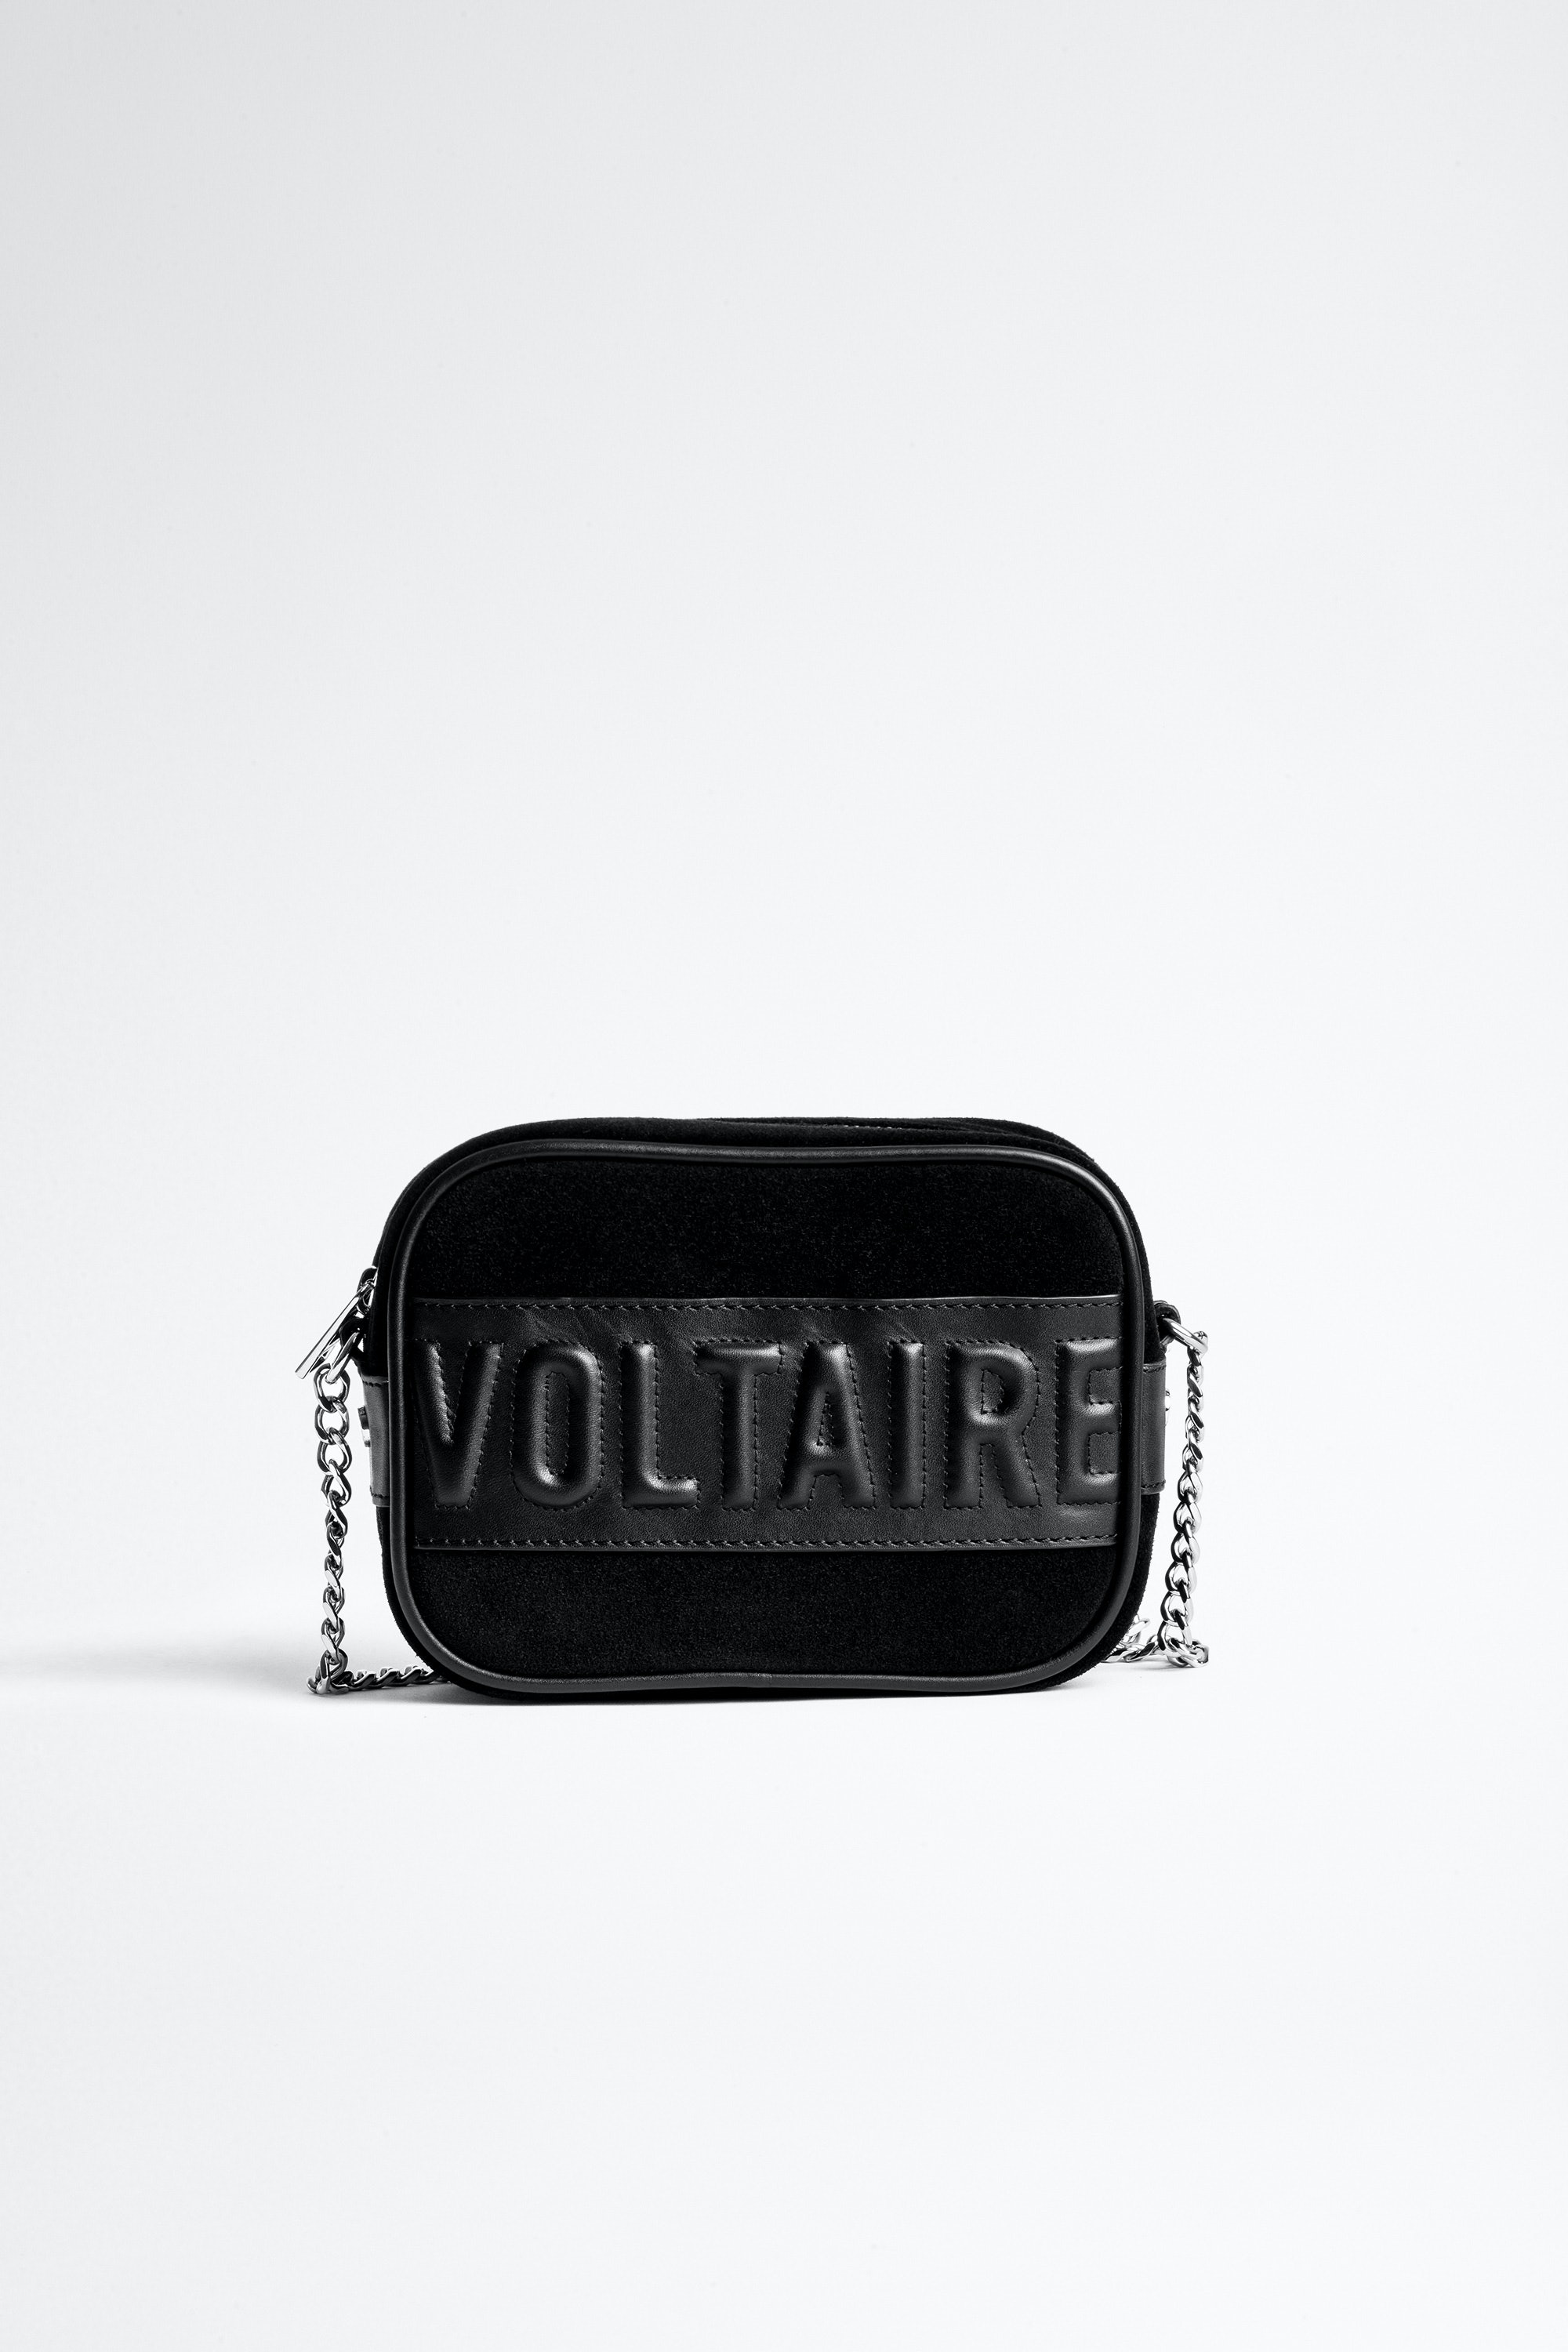 Sac XS Boxy Voltaire